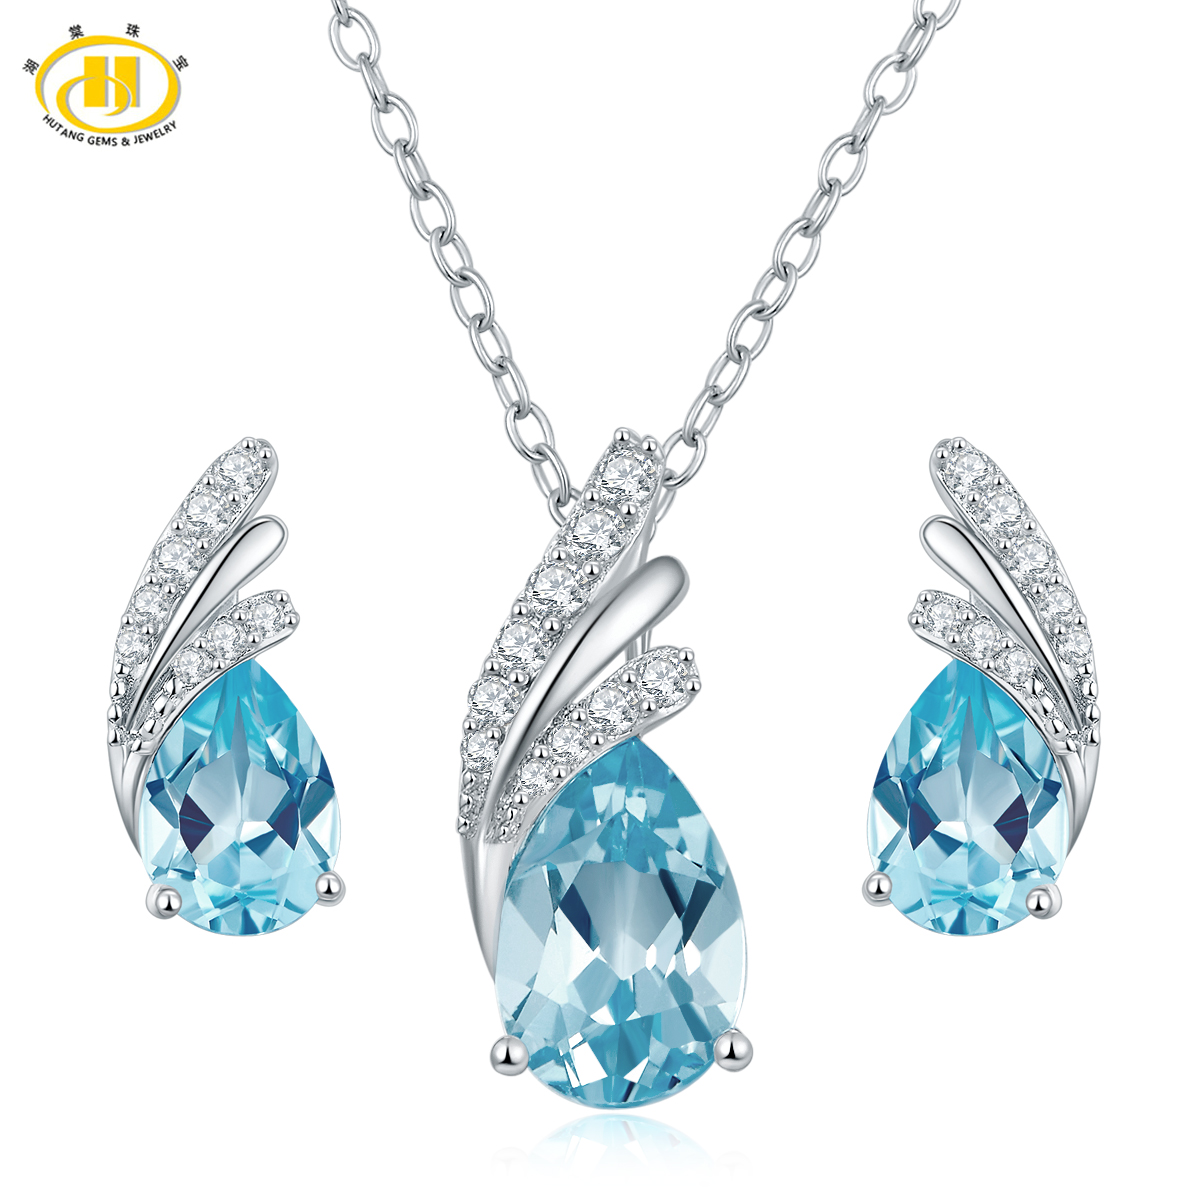 Hutang Solid 925 Sterling Silver Natural Blue Topaz Jewerly Sets Earrings Pendant Necklace Gemstone Fine Jewelry Women Gift